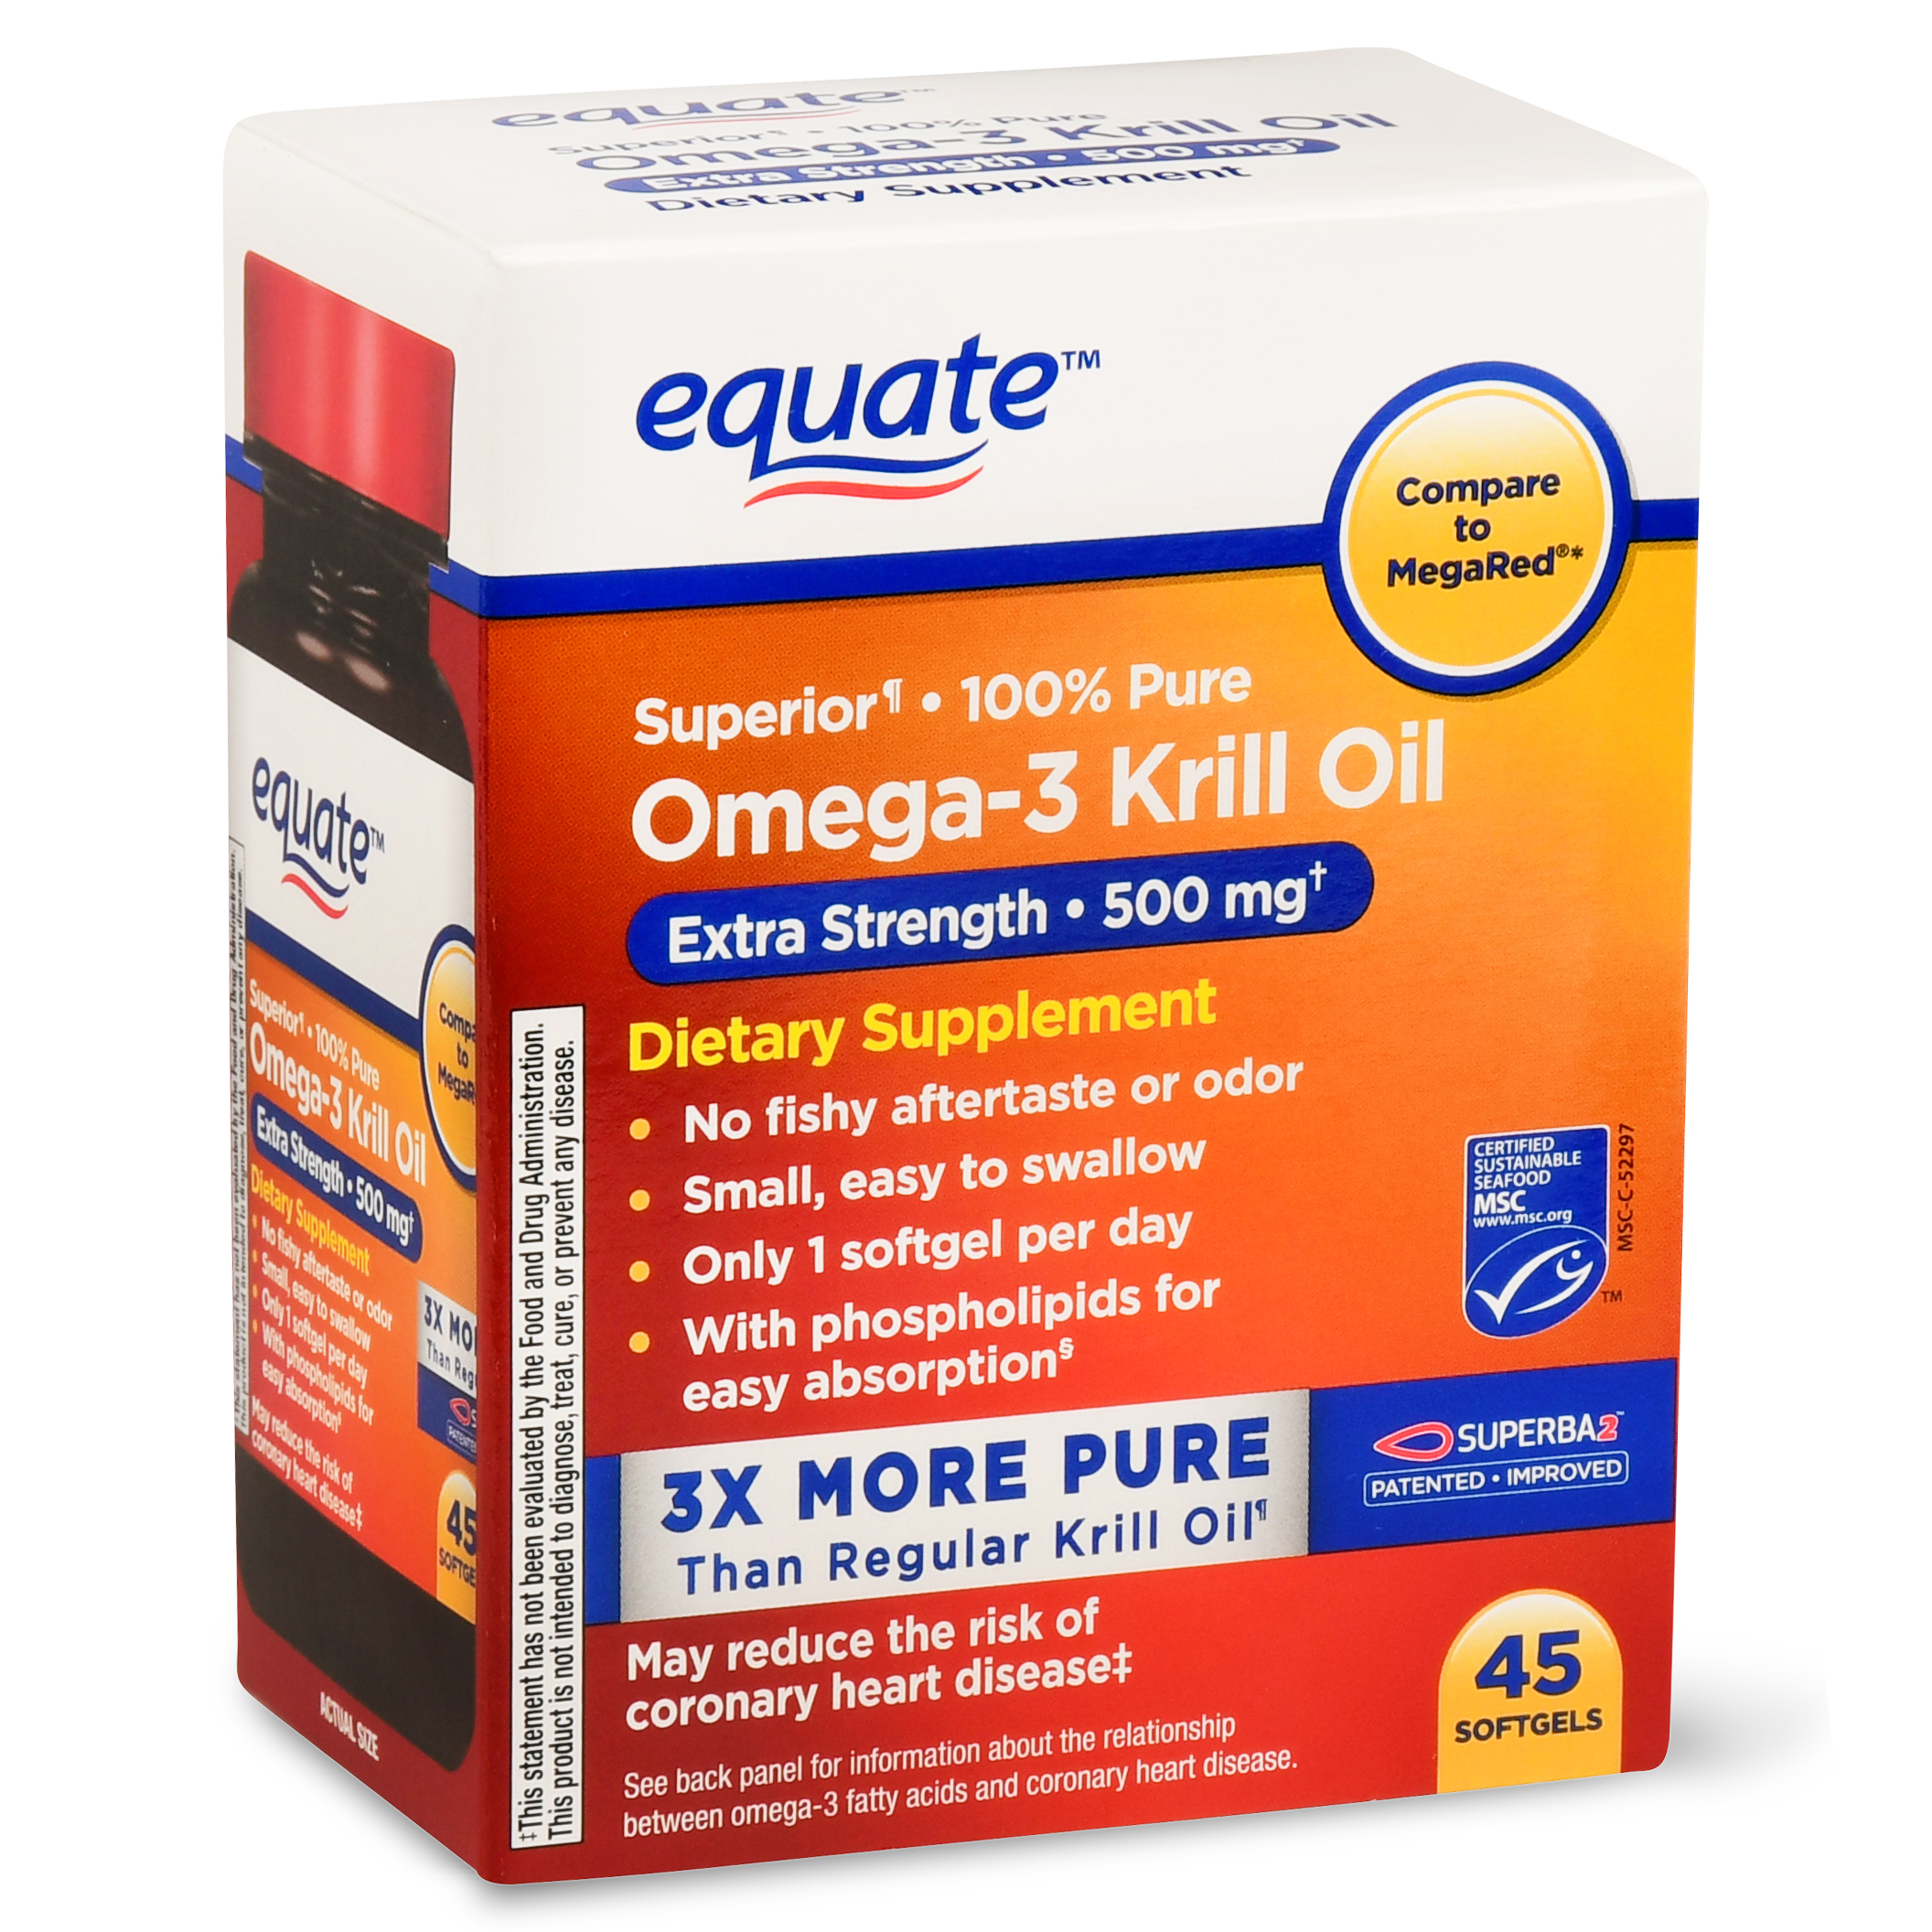 (2 pack) Equate Omega-3 Krill Oil Extra Strength Softgels, 500 Mg, 45 Ct